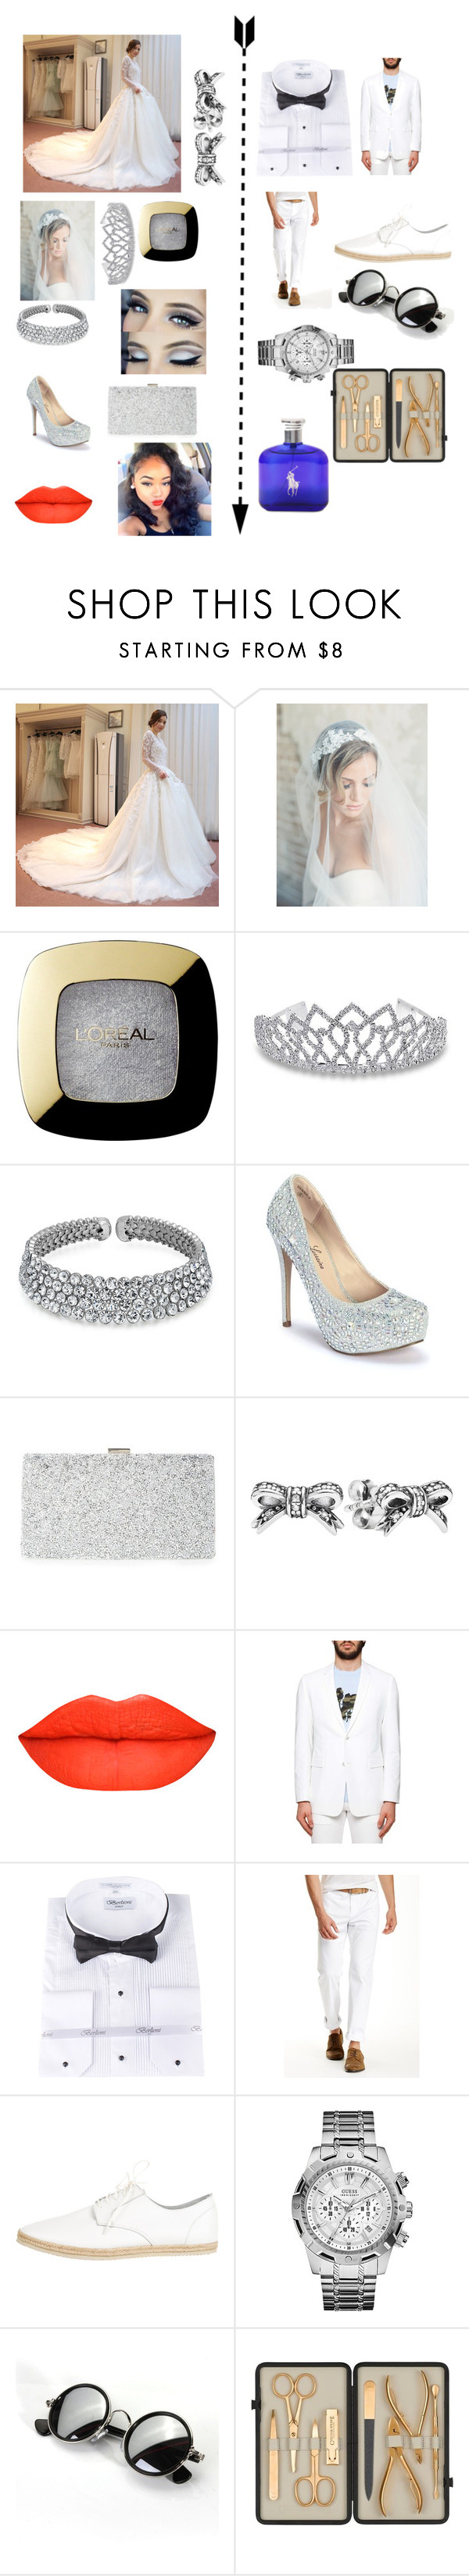 """my wedding day"" by eniola-niranoluwa on Polyvore featuring Yacca, L'Oréal Paris, Bling Jewelry, Lauren Lorraine, Sondra Roberts, Pandora, Dior Homme, John Varvatos, Yohji Yamamoto and GUESS"